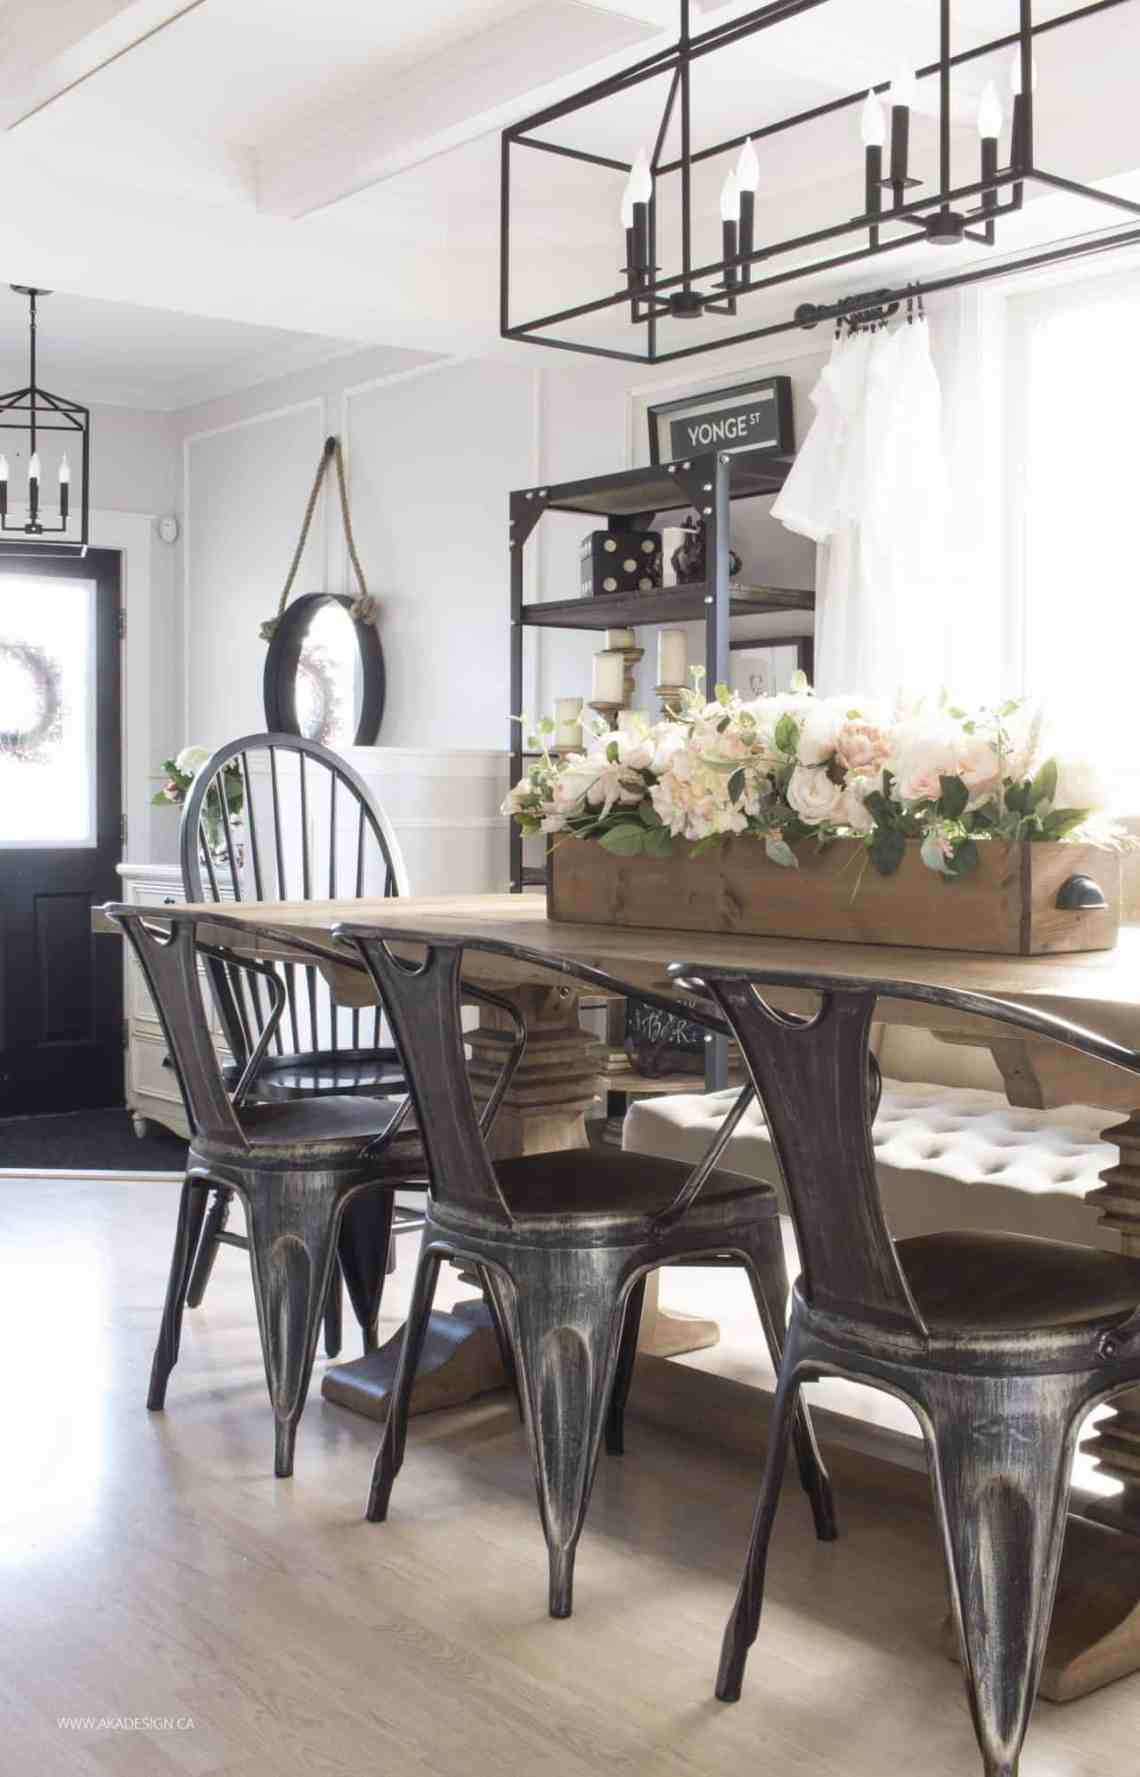 Our Current House Tour - Modern Farmhouse Style in the Suburbs